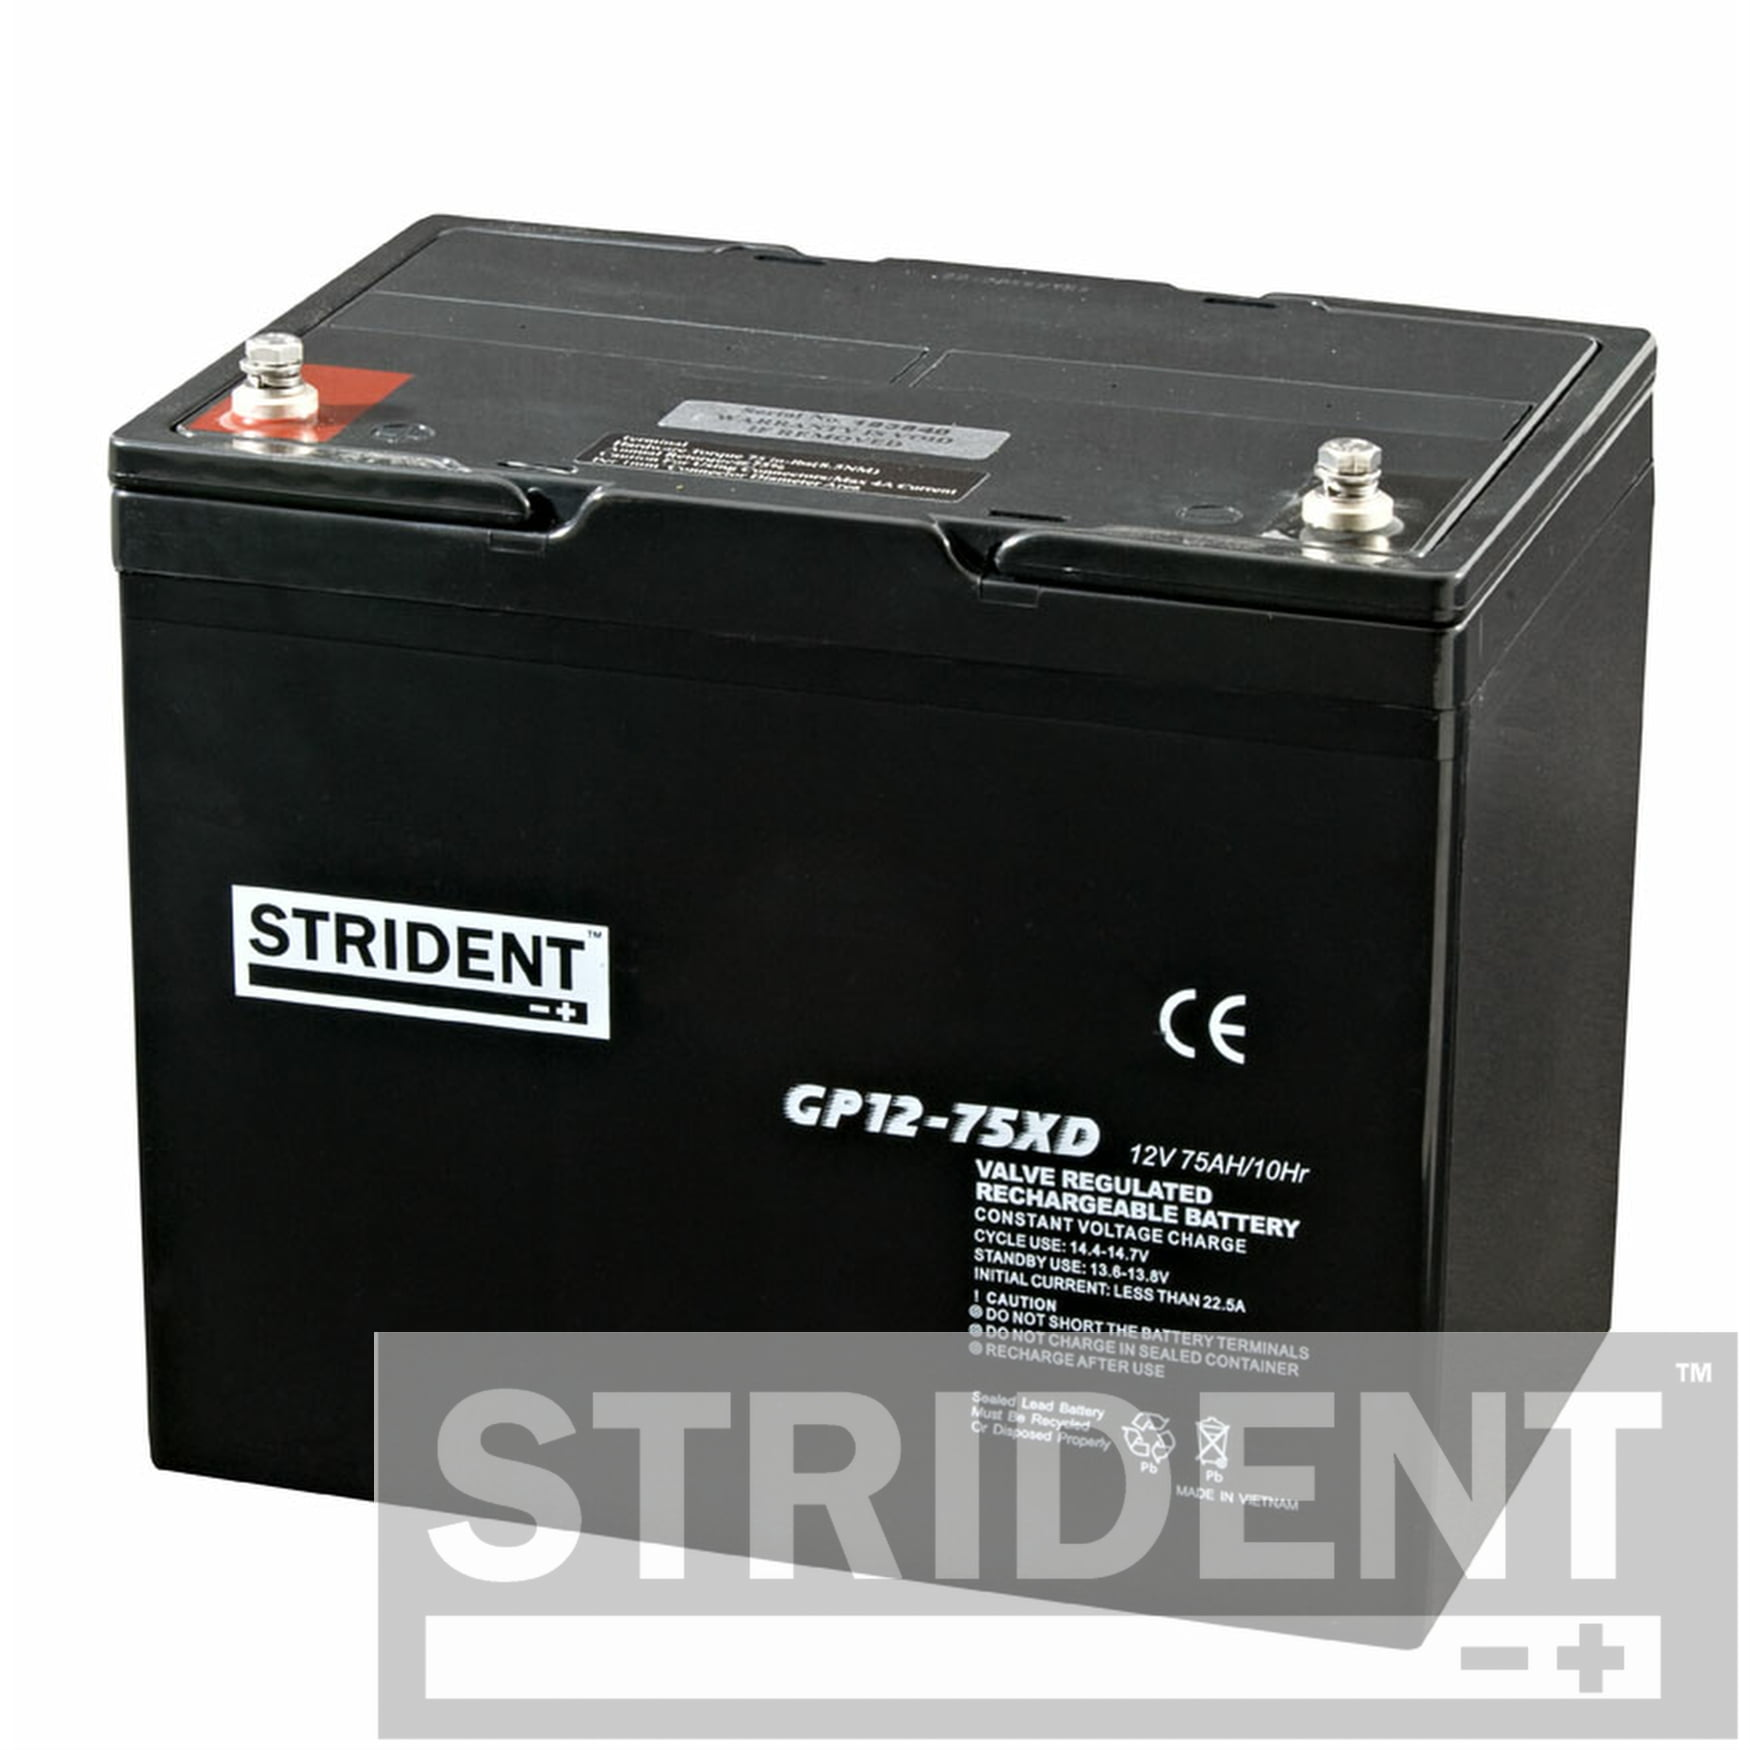 Strident™ GP12-75 Mobility Scooter Battery